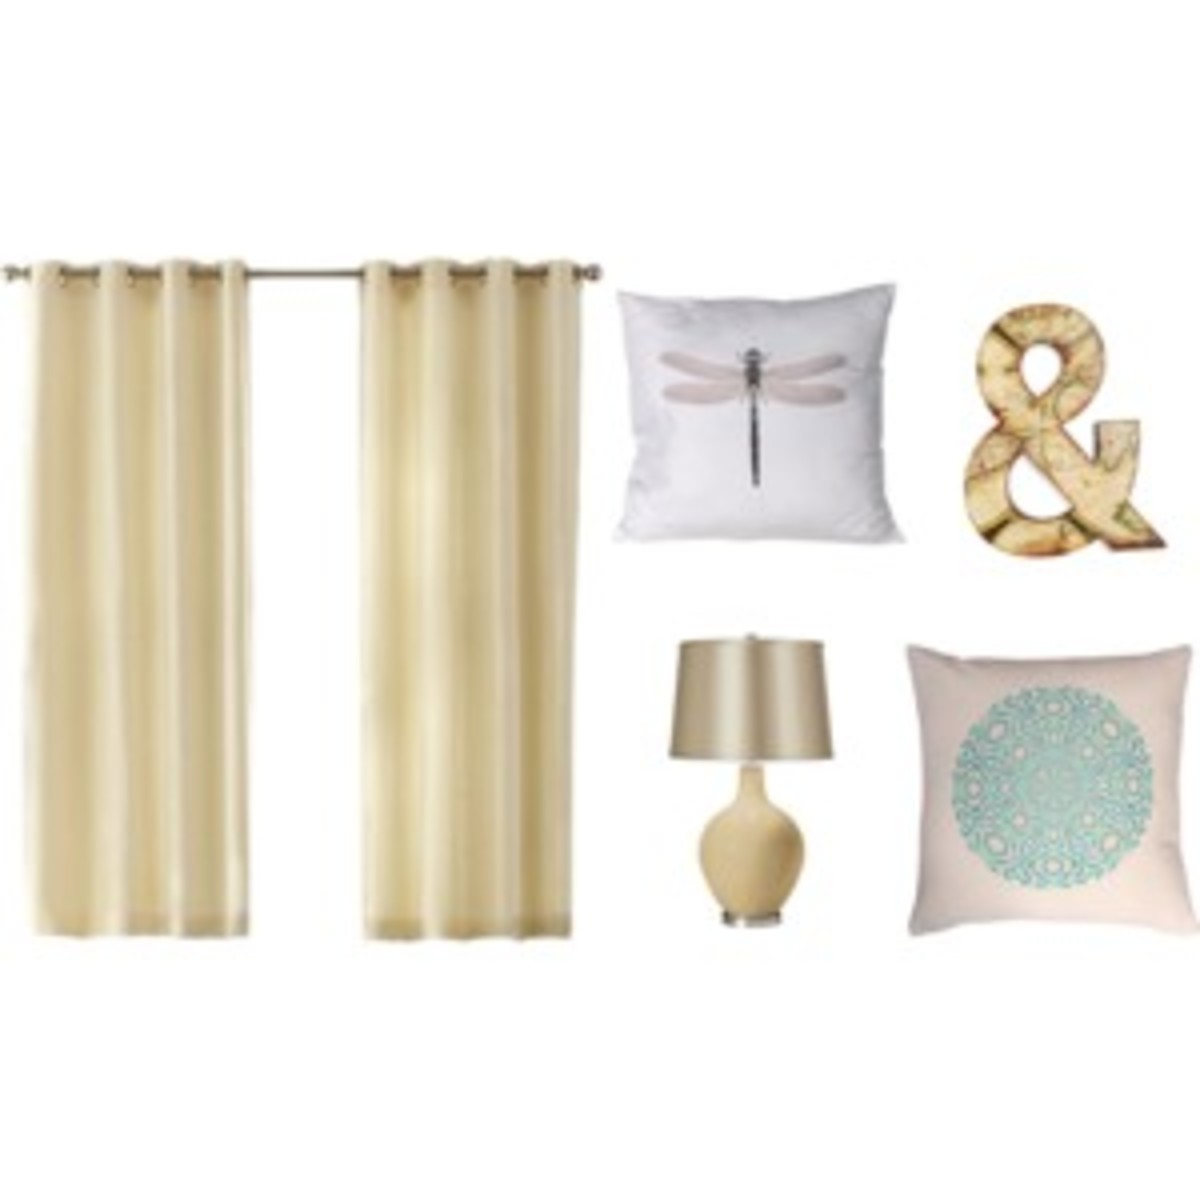 how-to-choose-curtains-and-pillows-for-your-home-or-apartment